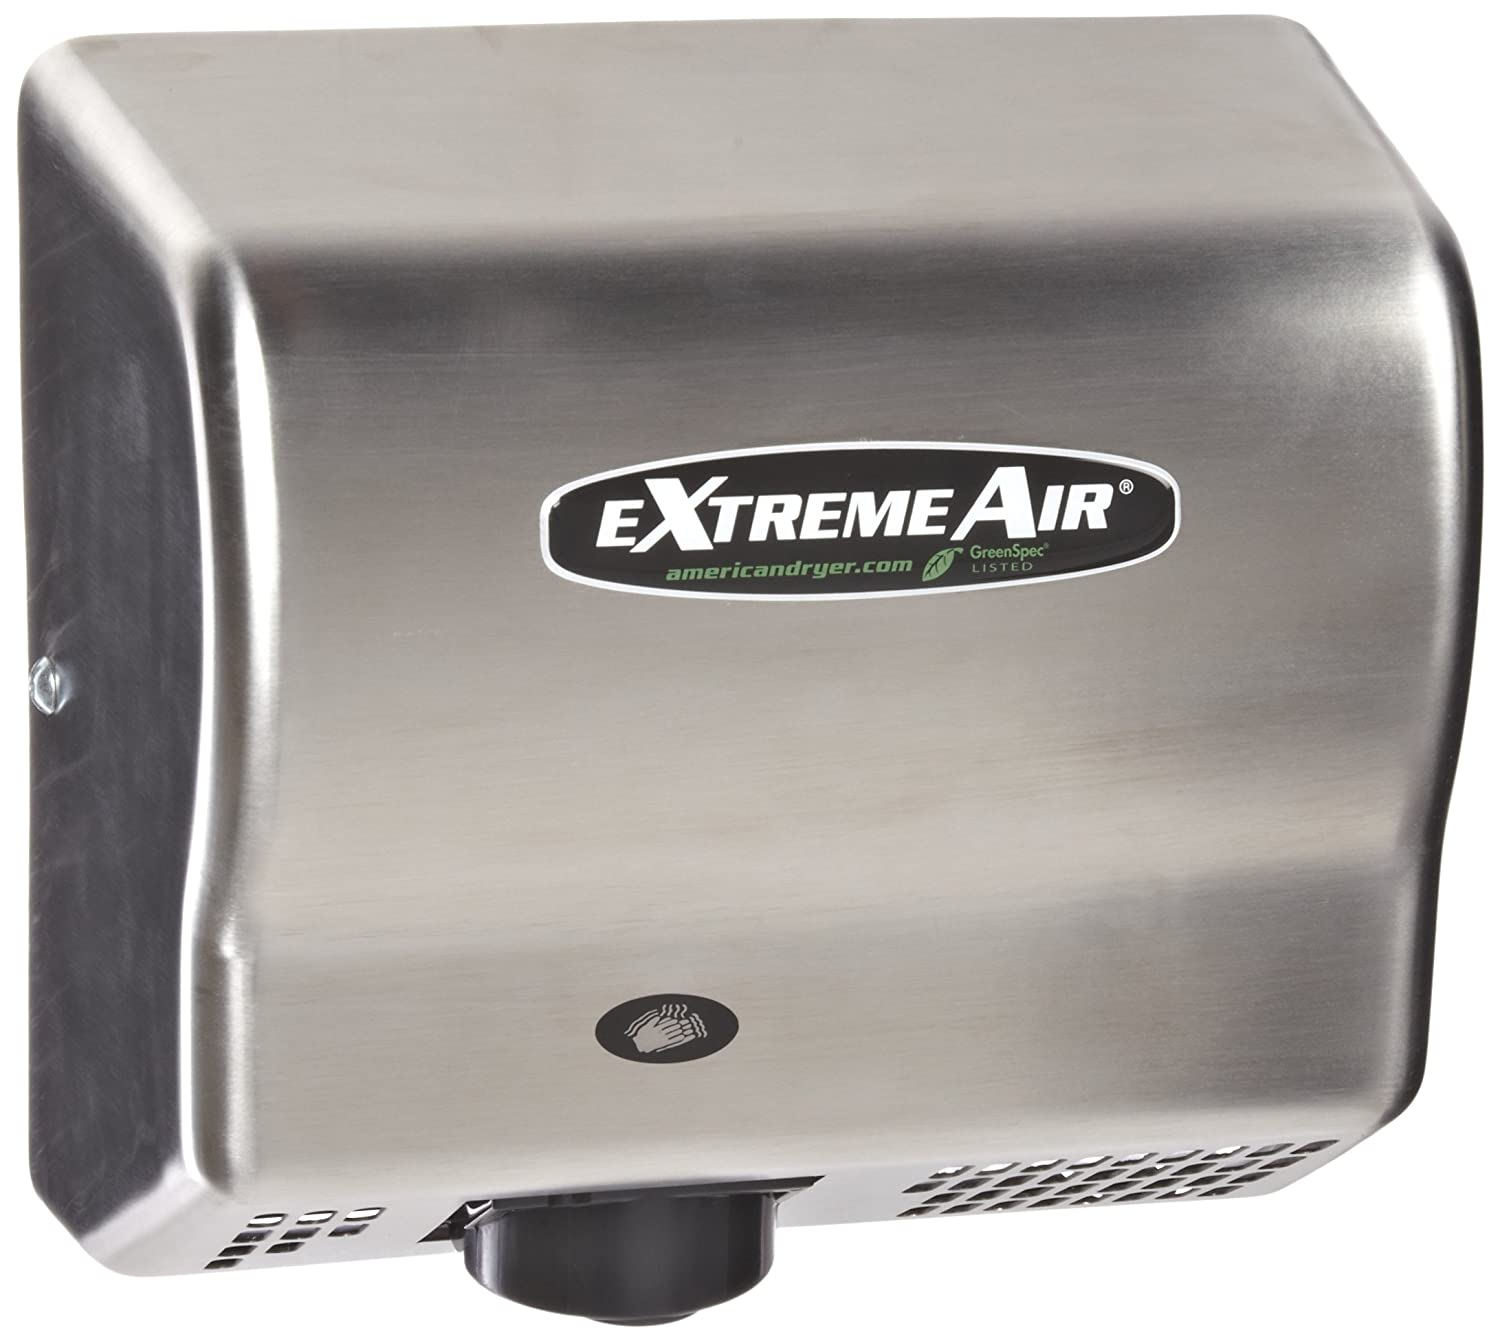 Image of American Dryer ExtremeAir EXT7-SS Stainless Steel Cover High-Speed Automatic Hand Dryer, 12-15 Second Dries, 100-240V, 540W Maximum Power, 50/60Hz Hand Dryers